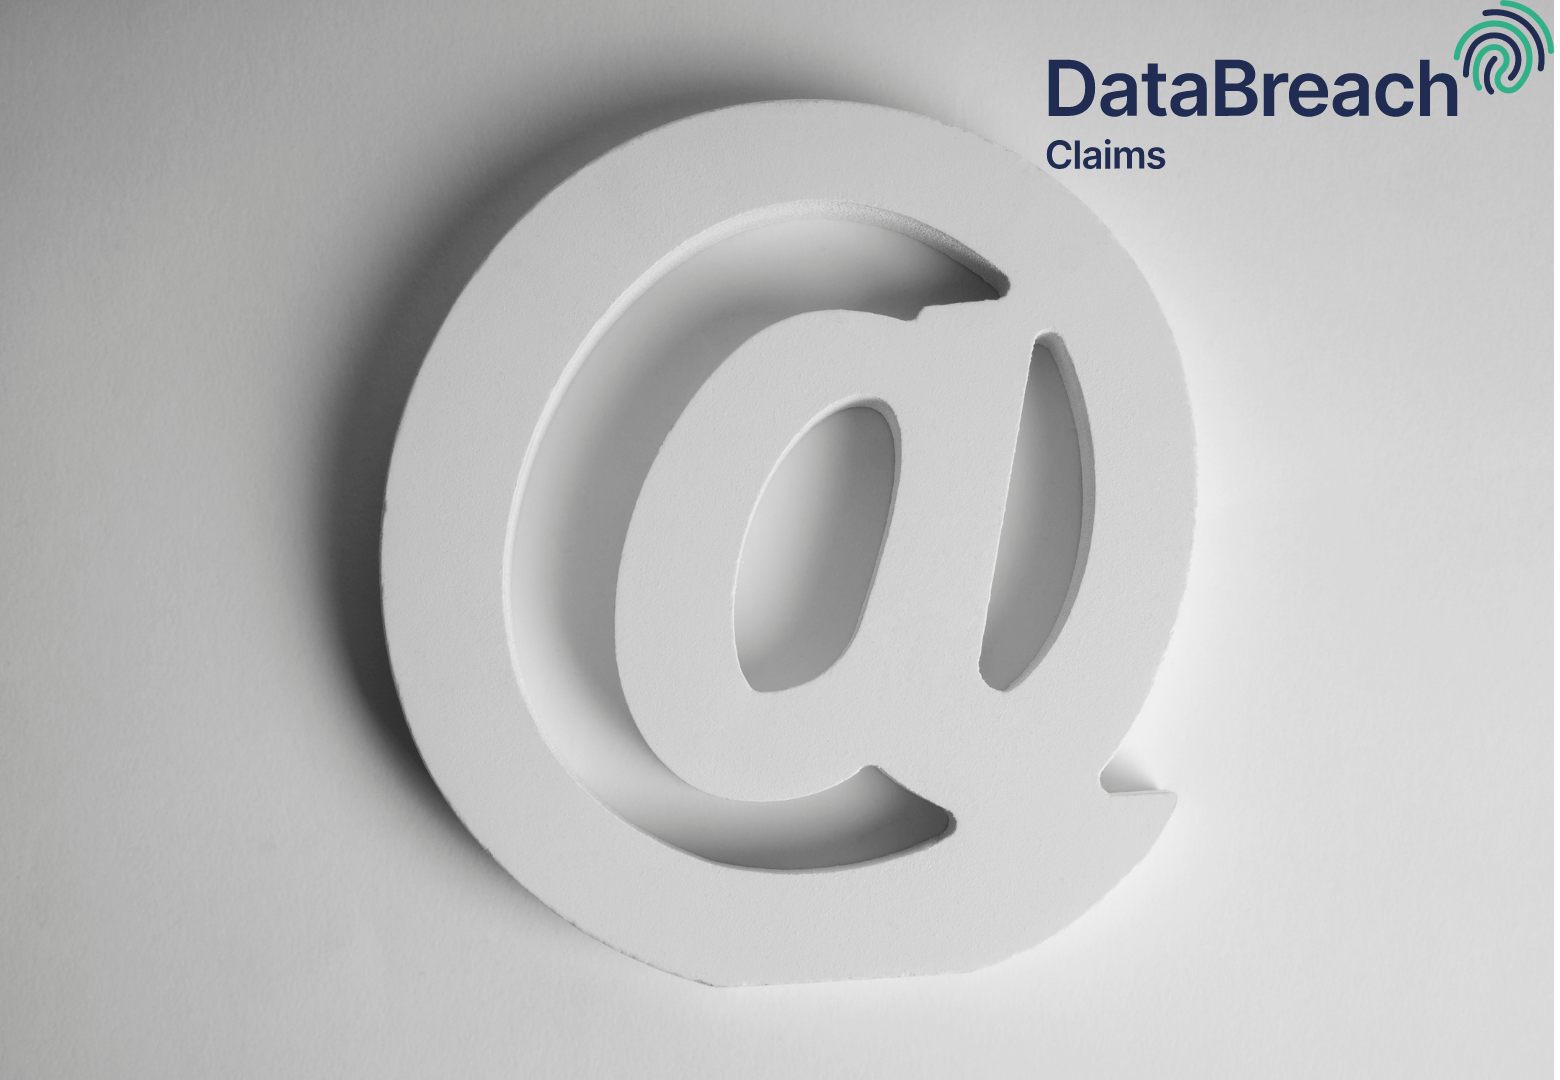 Is revealing my email address a breach of GDPR?